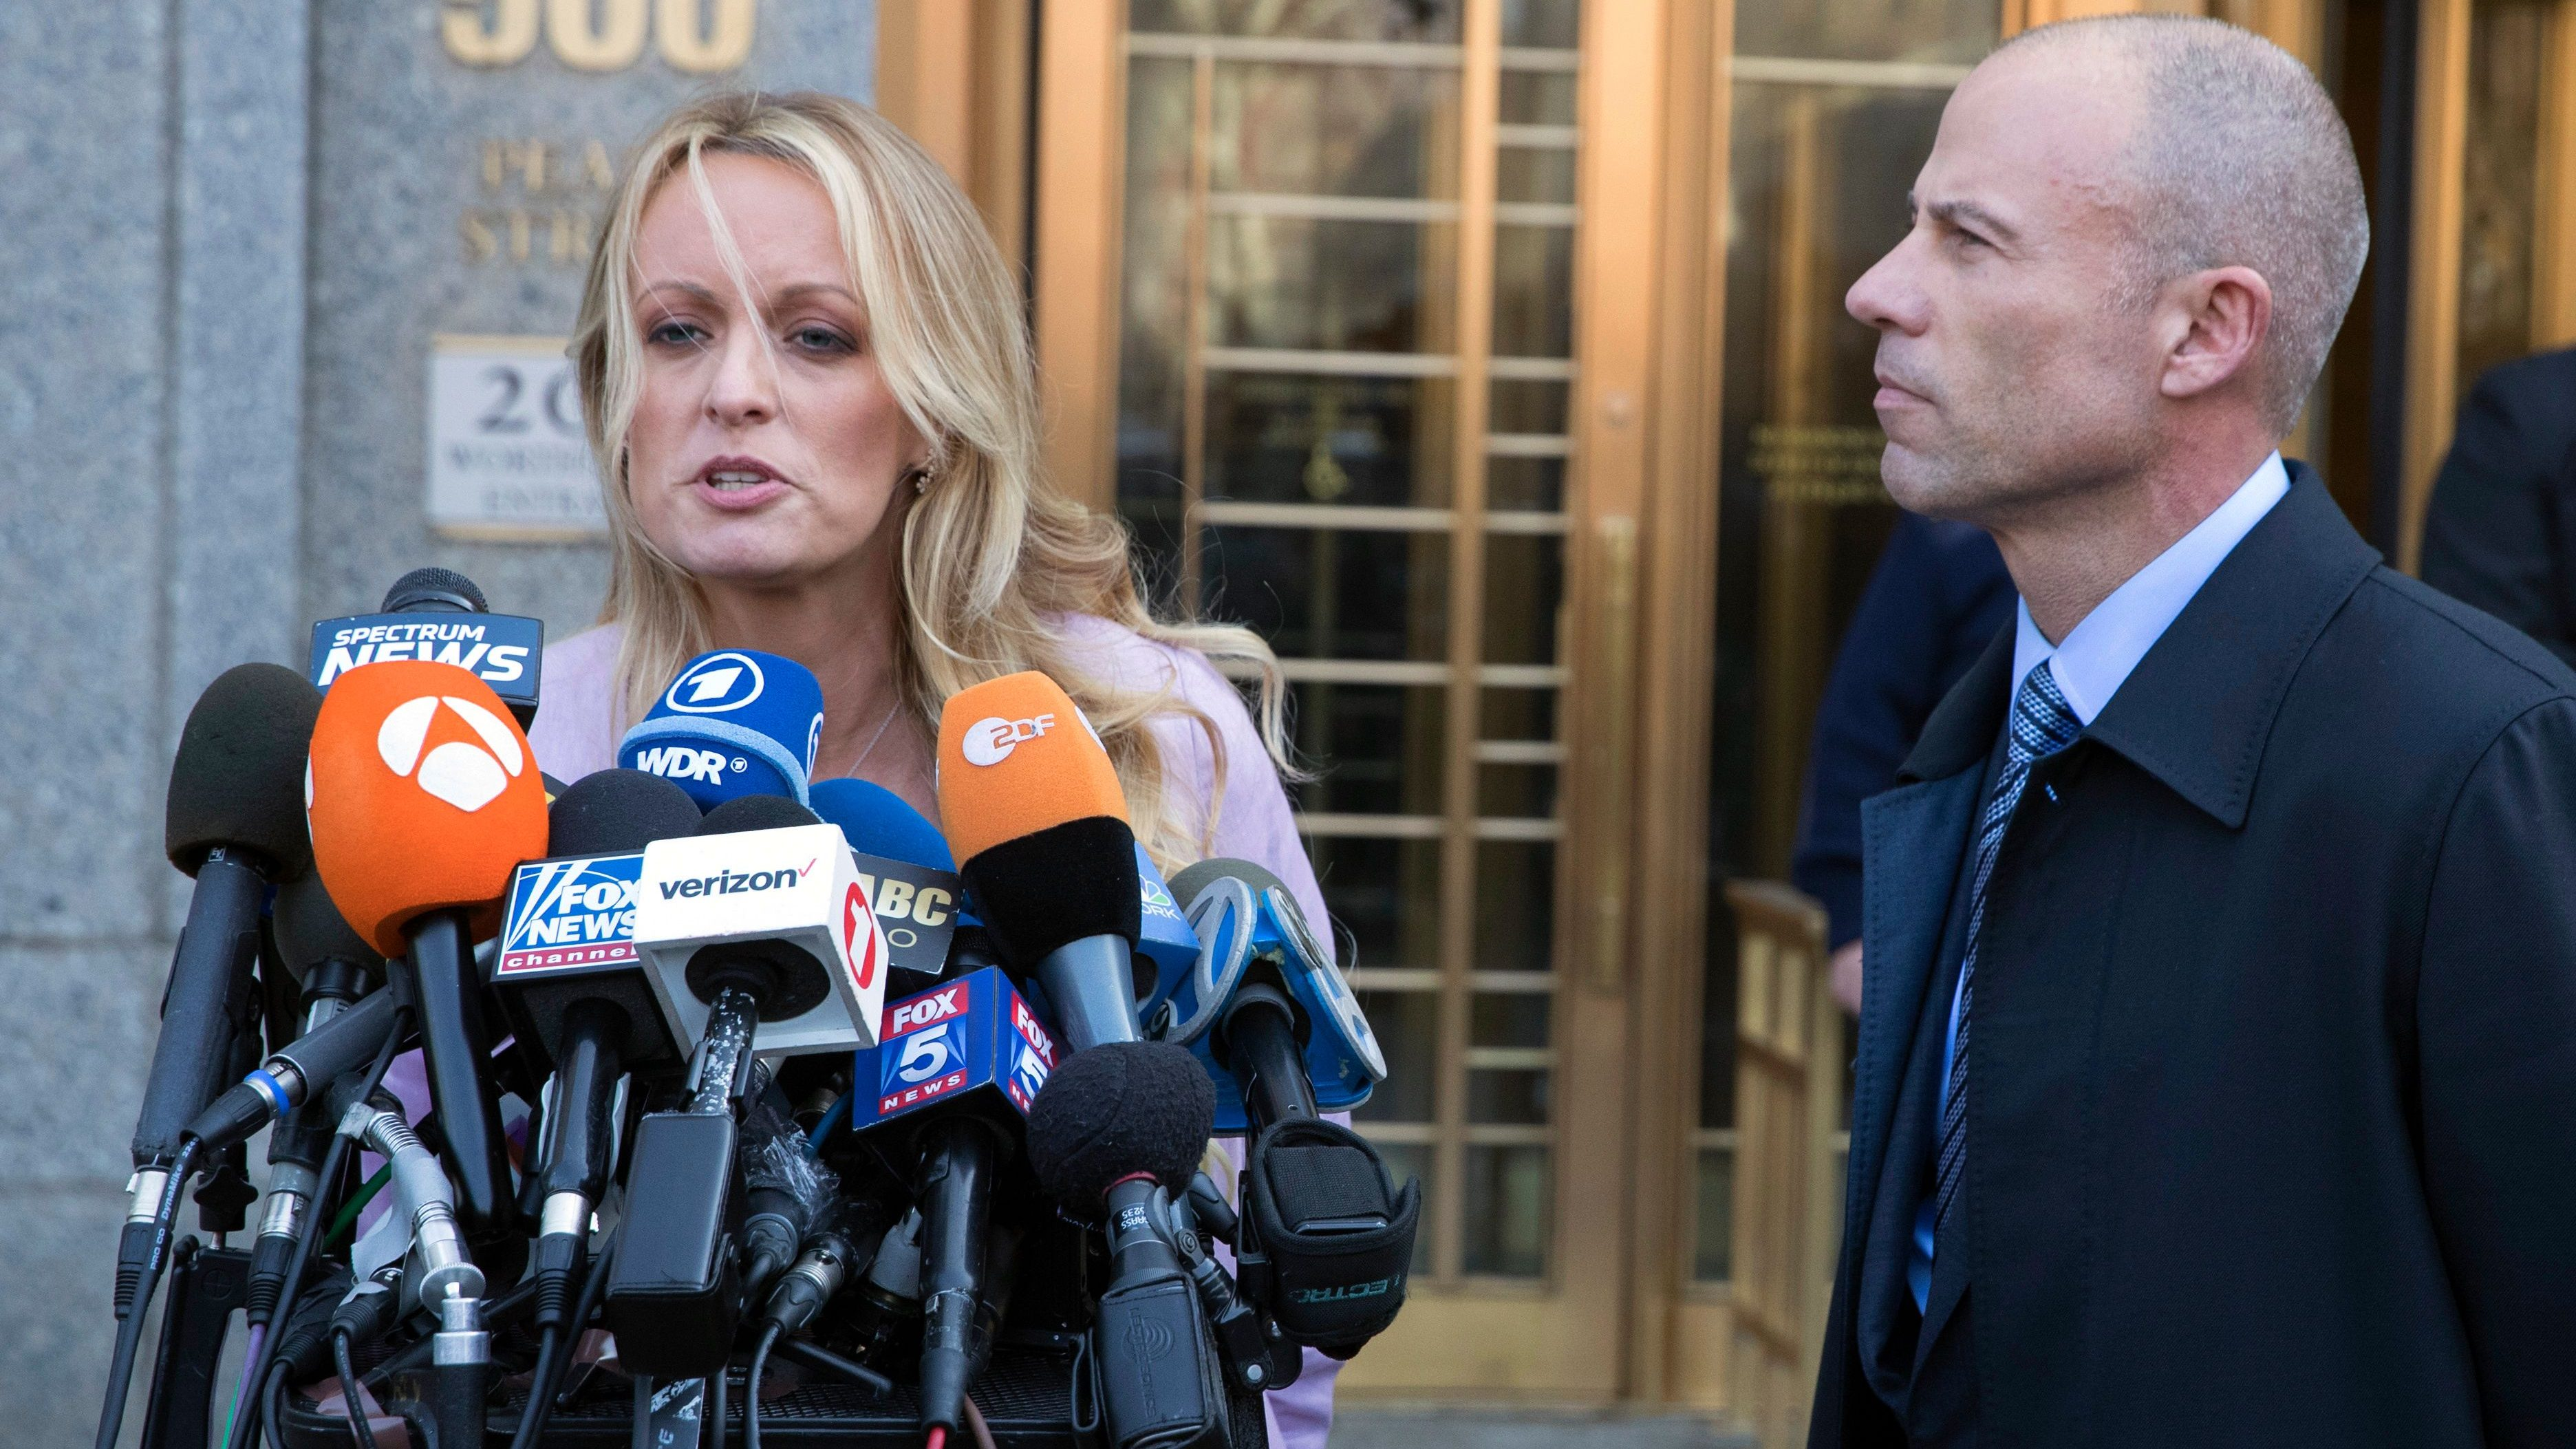 Image result for photos of stormy daniels with Michael Avenatti